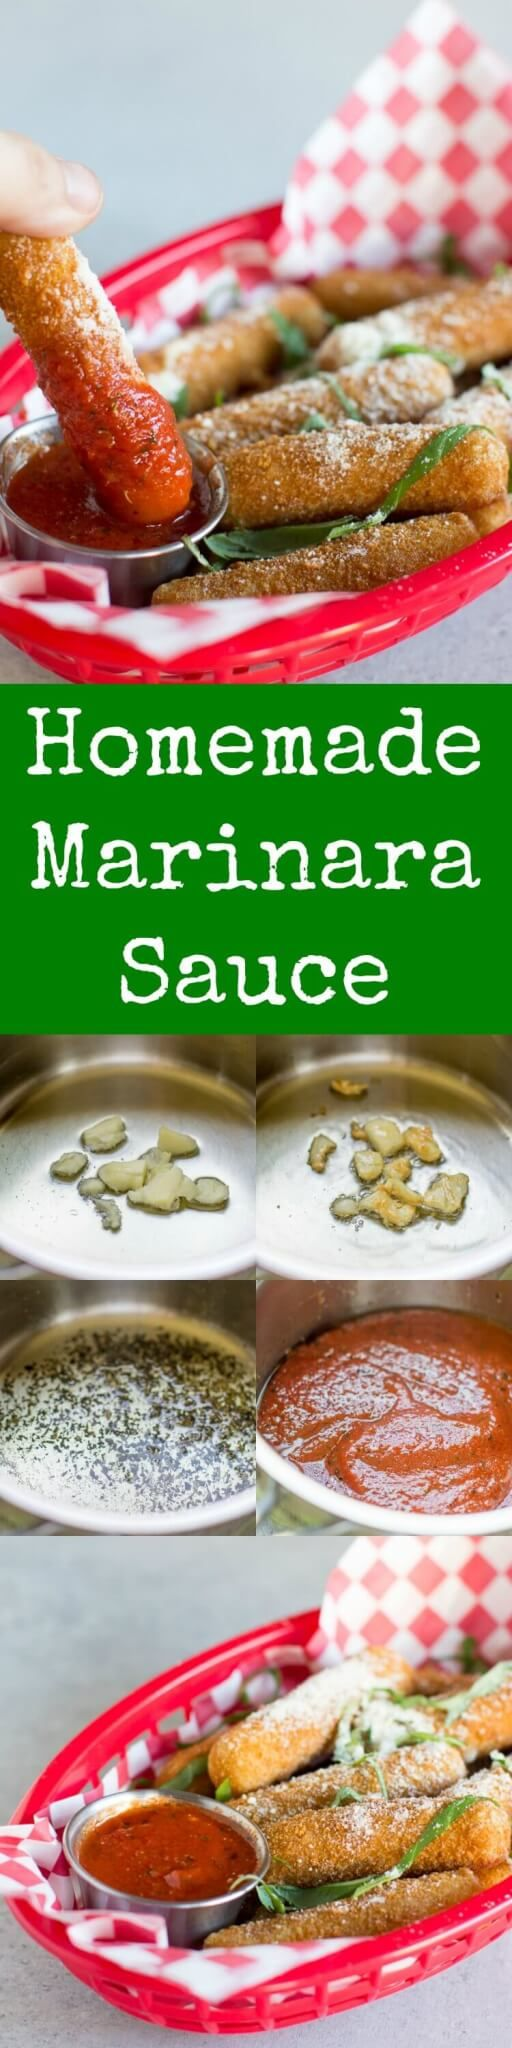 This homemade Marinara Sauce is ideal for dipping all your favorite appetizers. It's fast and easy, made with just 5 pantry ingredients and ready in minutes!